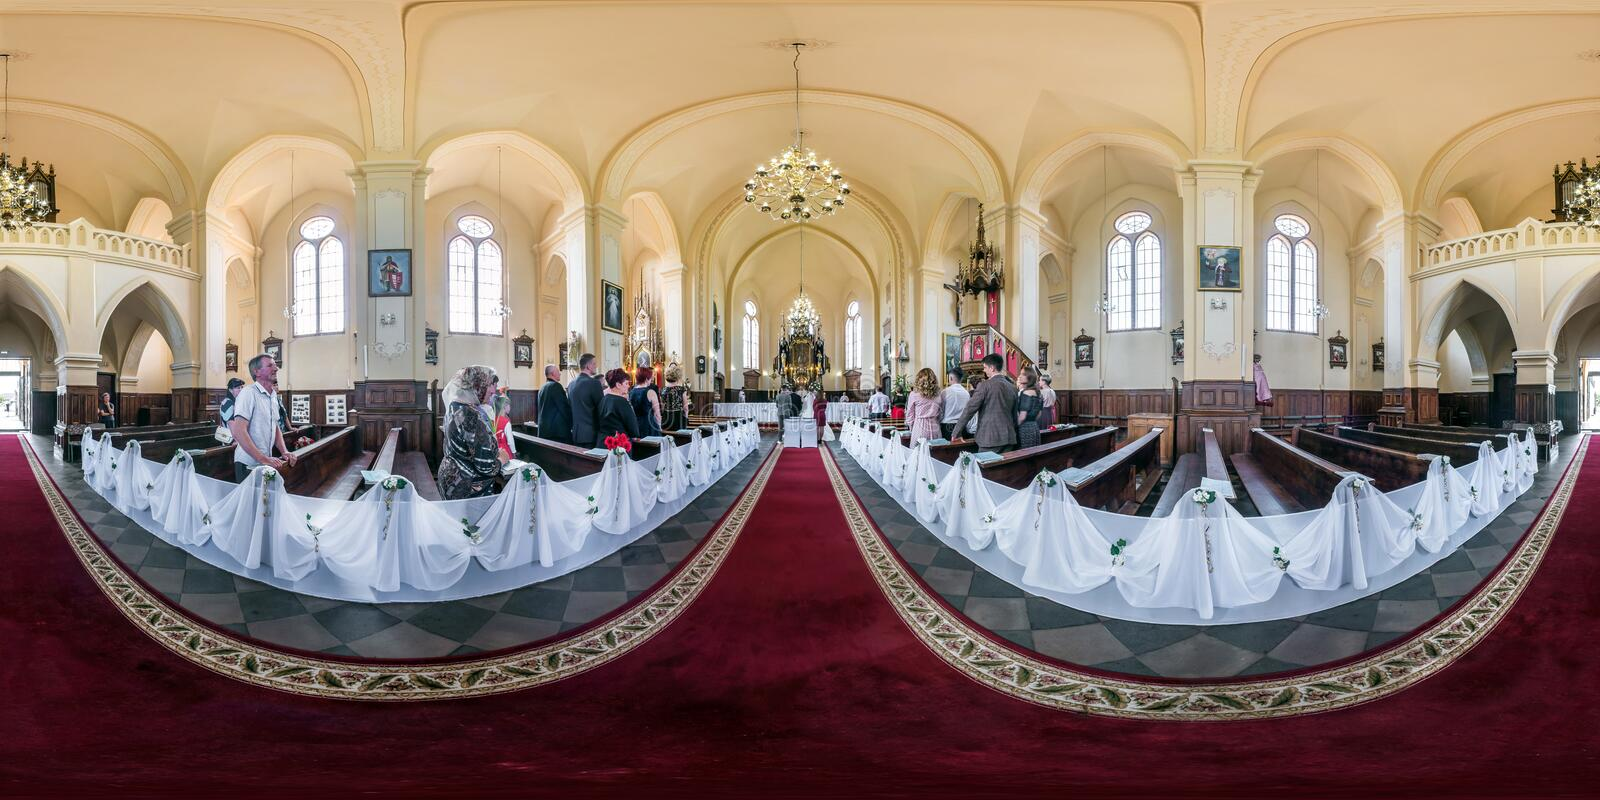 GRODNO, BELARUS - MAY, 2019: Full seamless spherical hdr panorama 360 in interior catholic Church during the wedding ceremony in royalty free stock photo